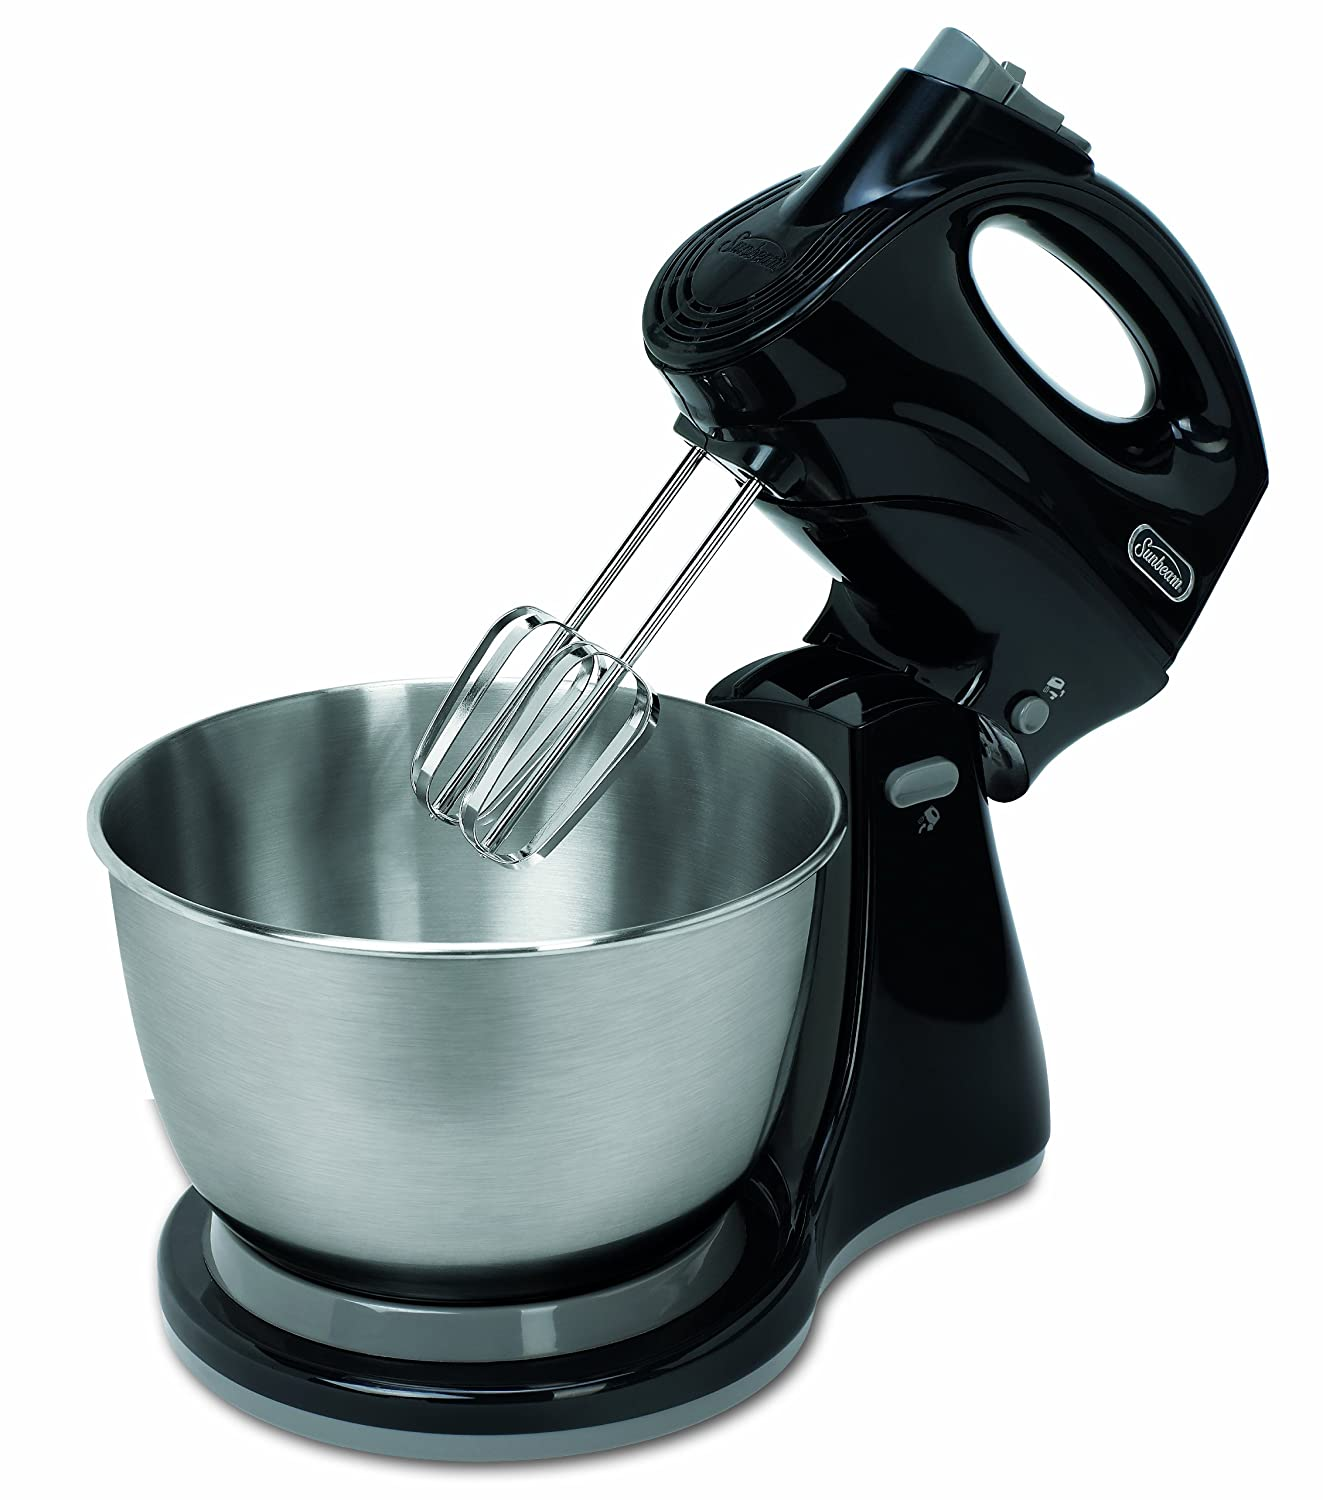 Amazon.com: Sunbeam FPSBHS0302 250-Watt 5-Speed Stand Mixer, Black ...